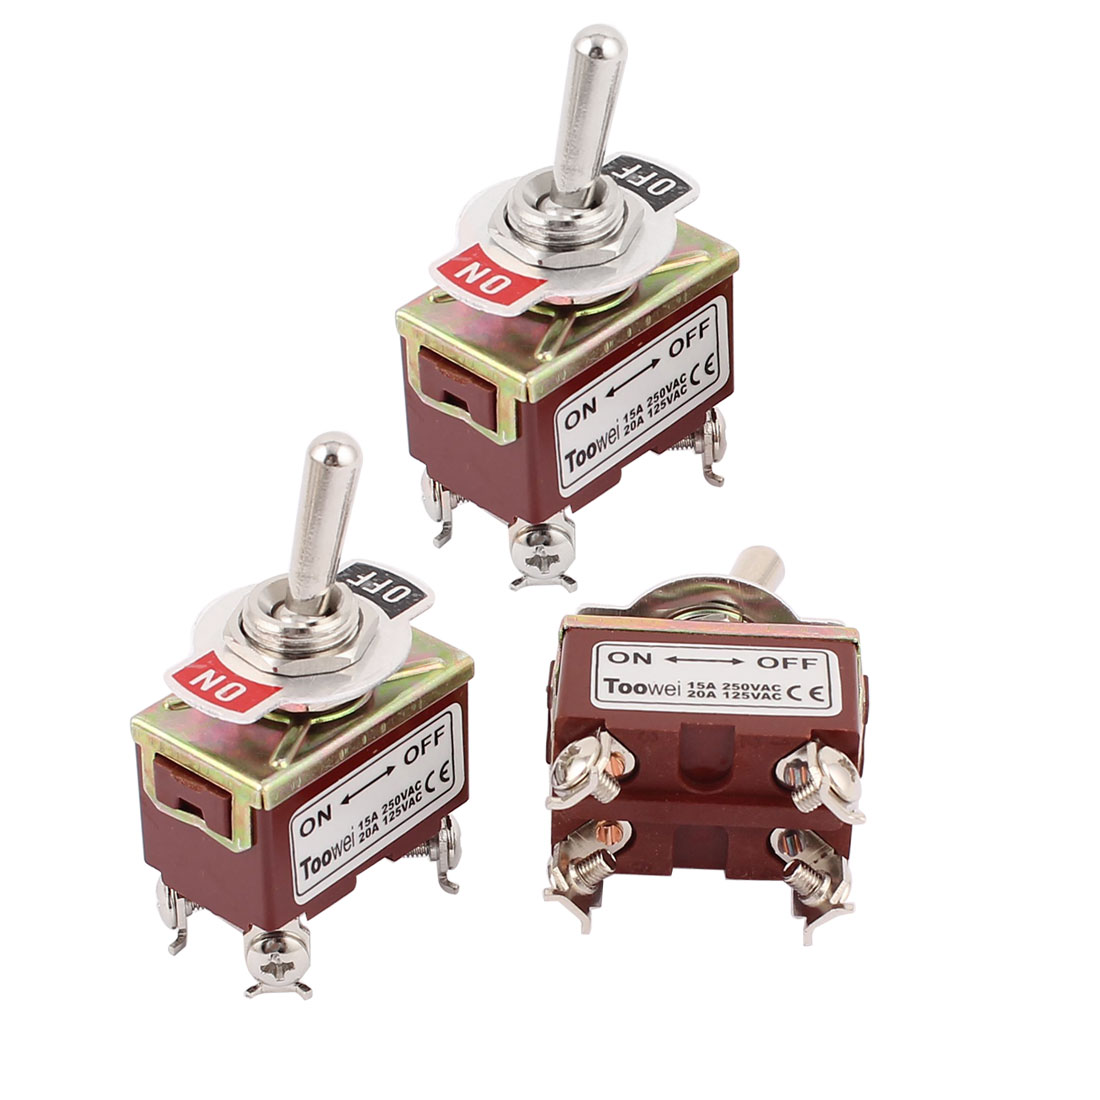 3Pcs AC 250V 15A / 125V 20A Latching ON-OFF DPST 2 Positions 4 Screw Terminals Toggle Switch